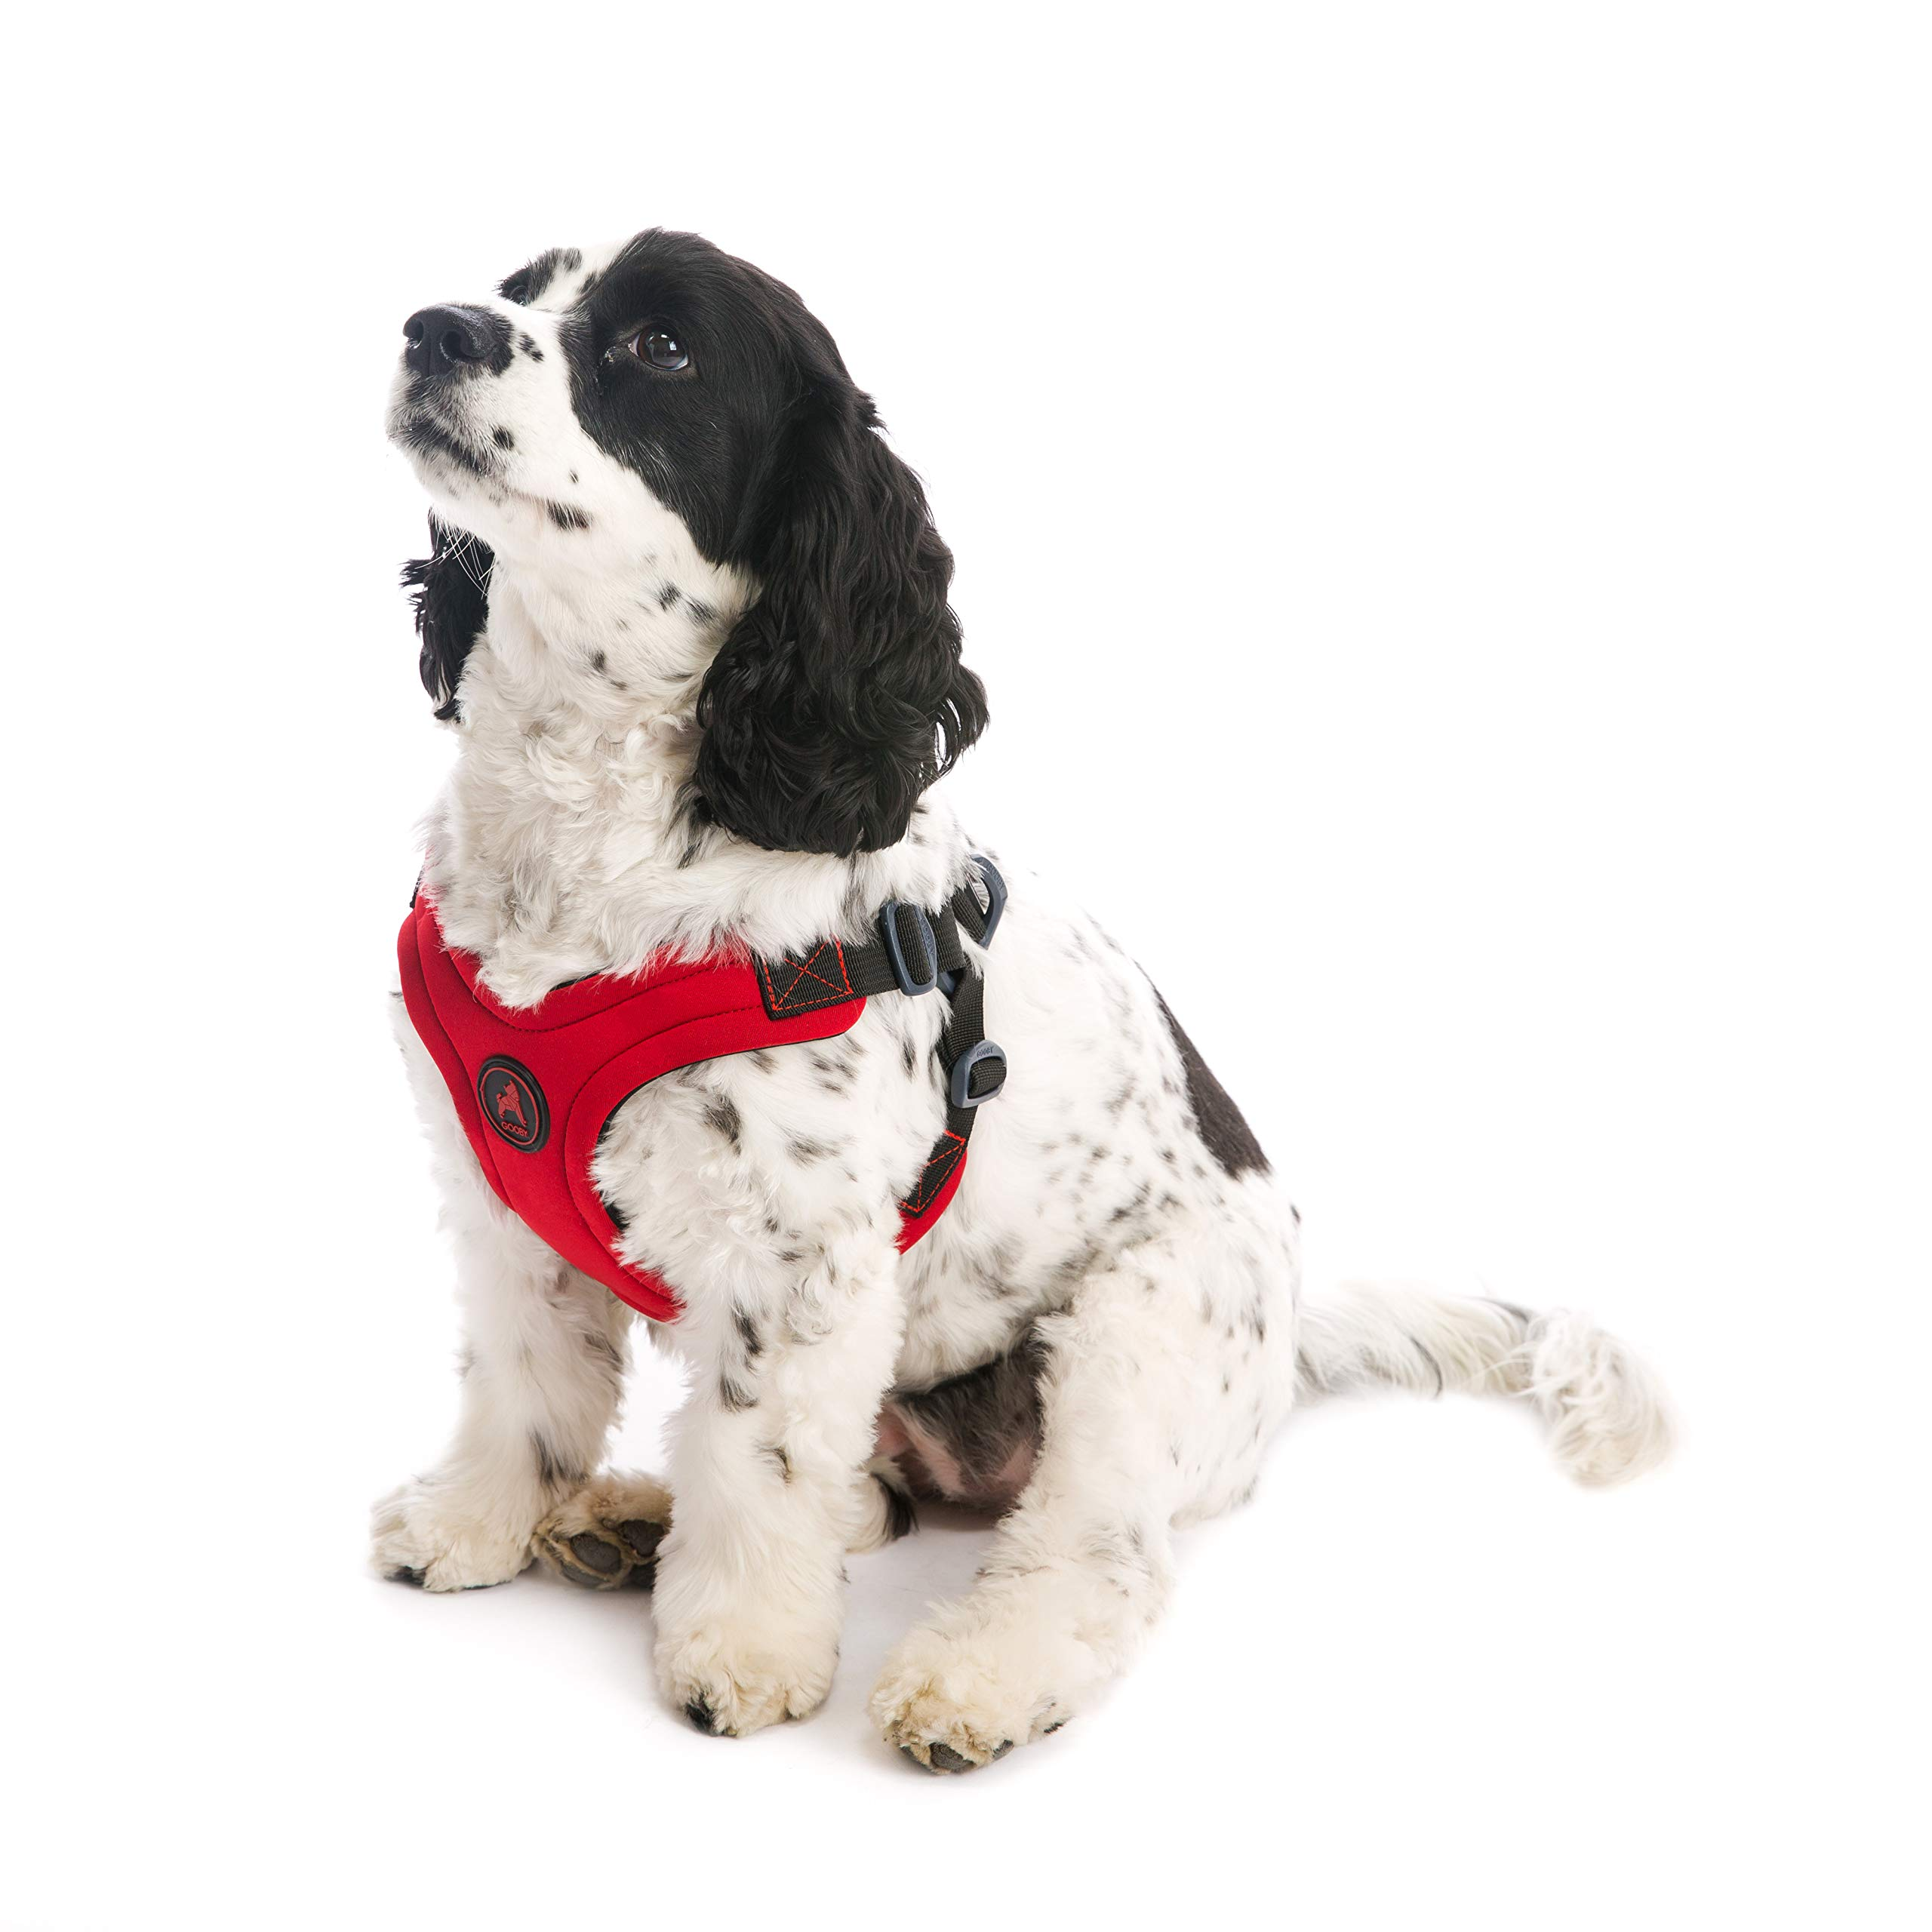 Gooby - Escape Free Sport Harness, Small Dog Step-in Neoprene Harness for Dogs That Like to Escape Their Harness, Red, Large by Gooby